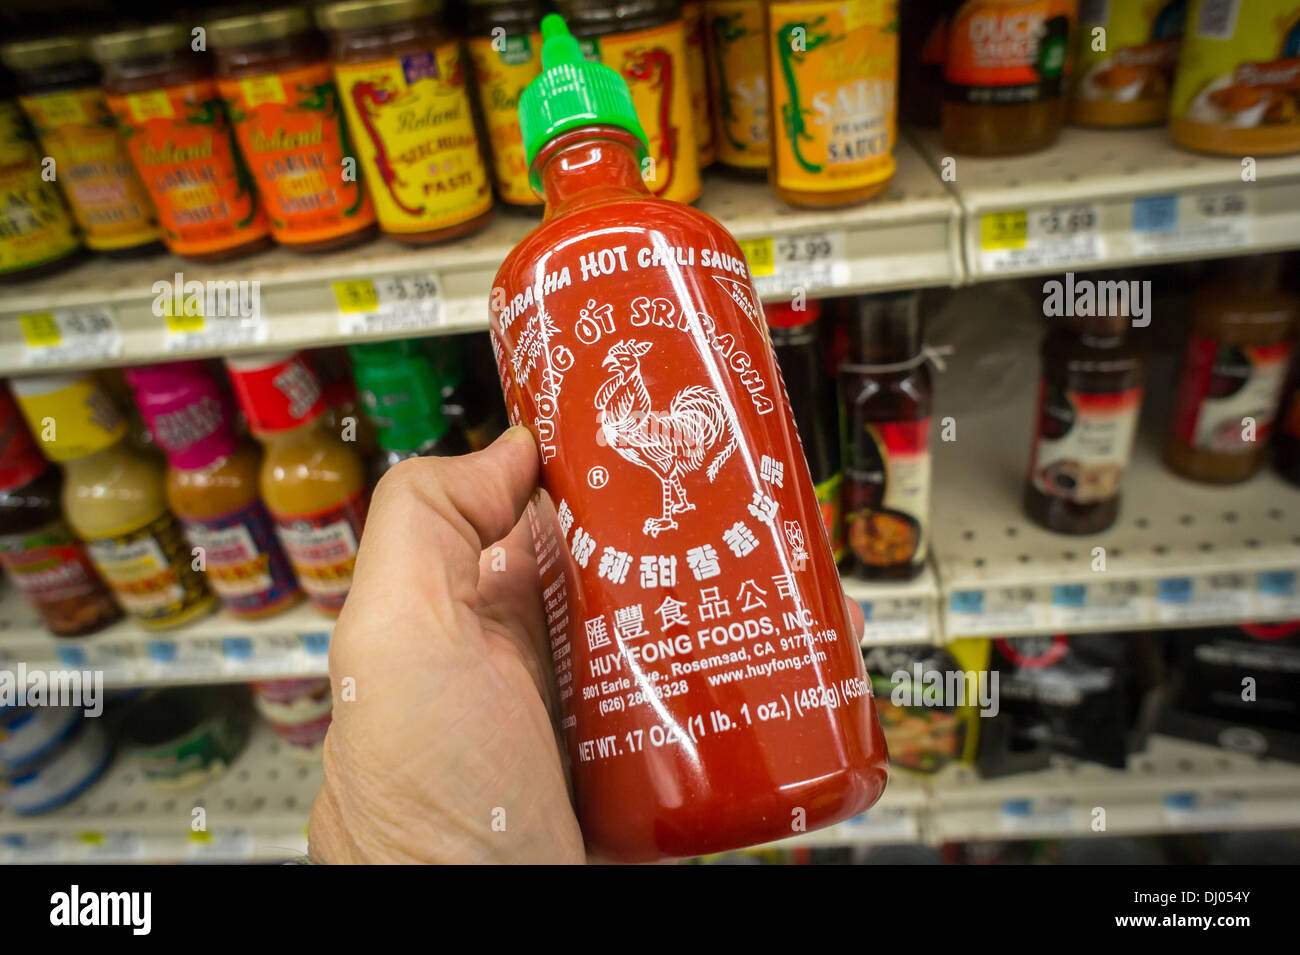 A bottle of Sriracha hot sauce manufactured by Huy Fong Foods is seen in the asian food section of a supermarket in New York - Stock Image